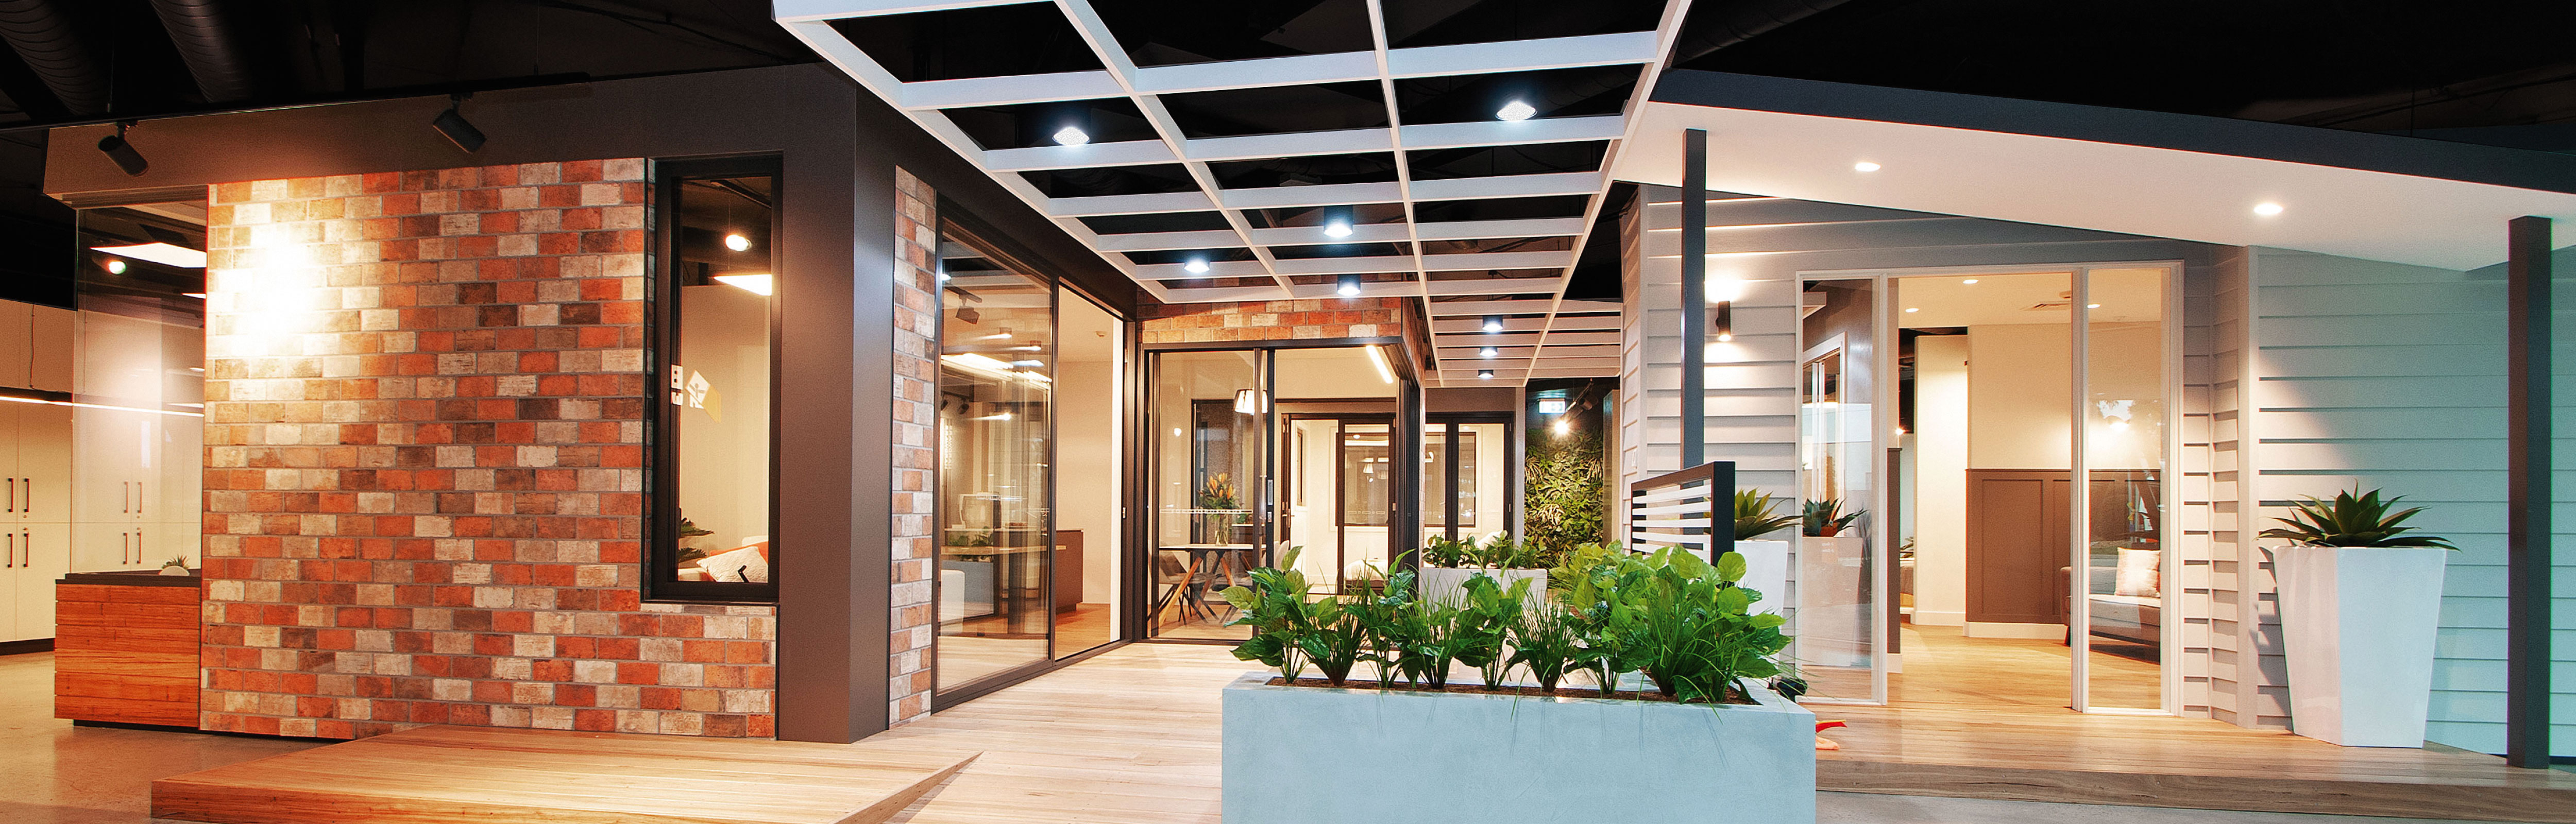 Bradnam's Windows & Doors Southeast Melbourne showroom